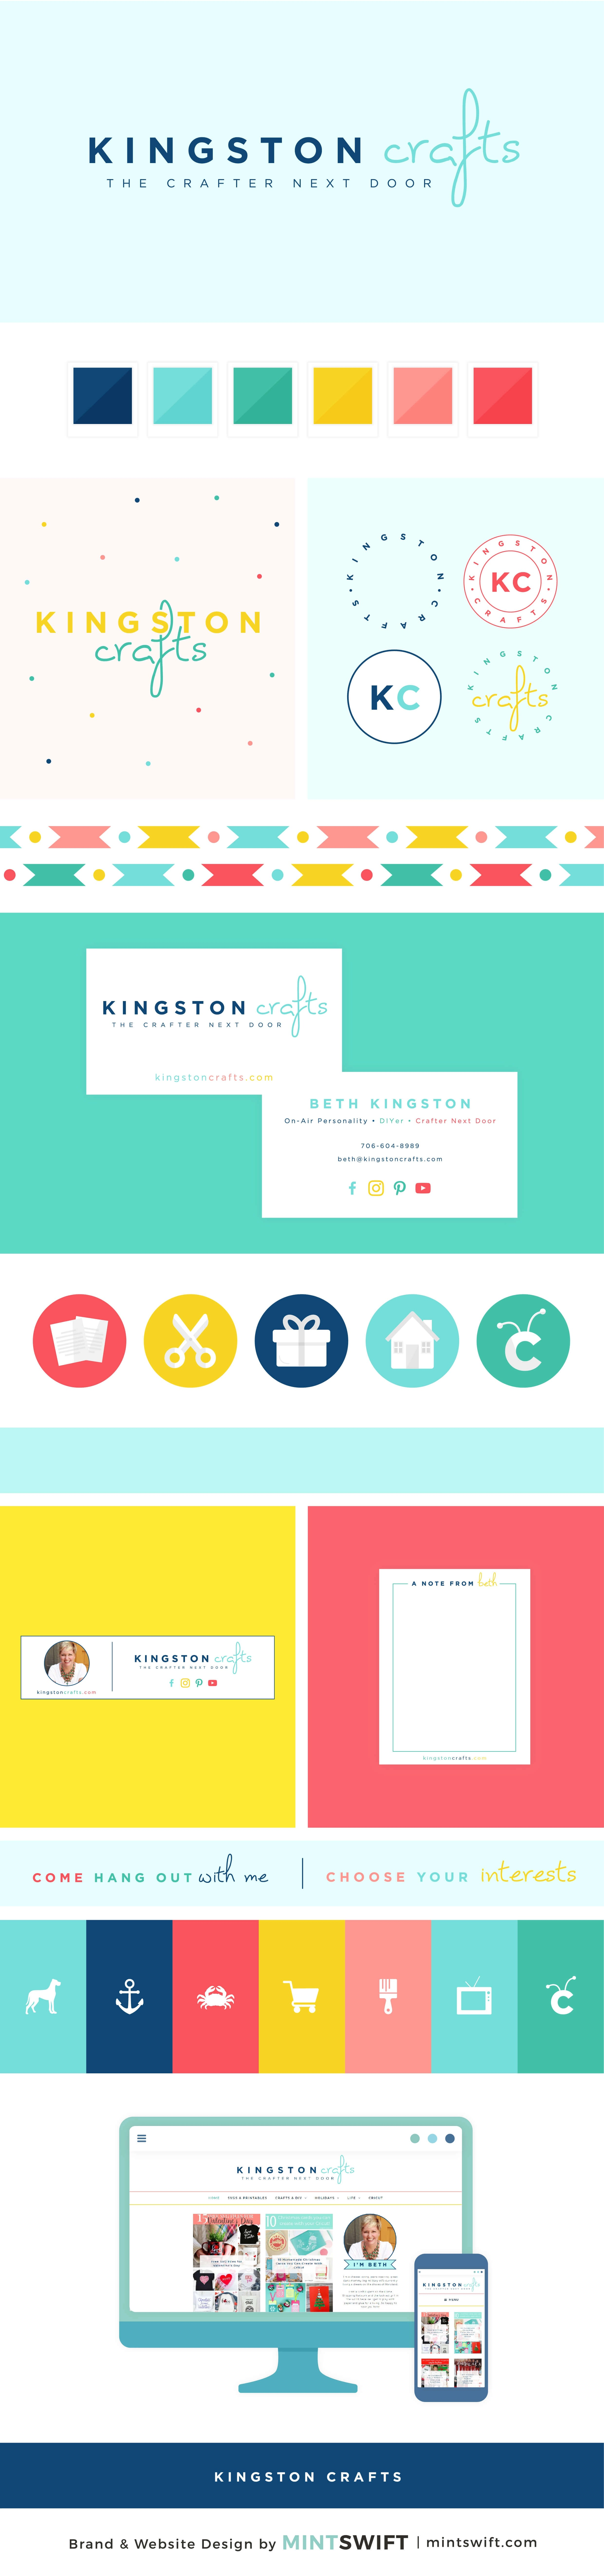 Kingston Crafts - Brand Design Package by MintSwift